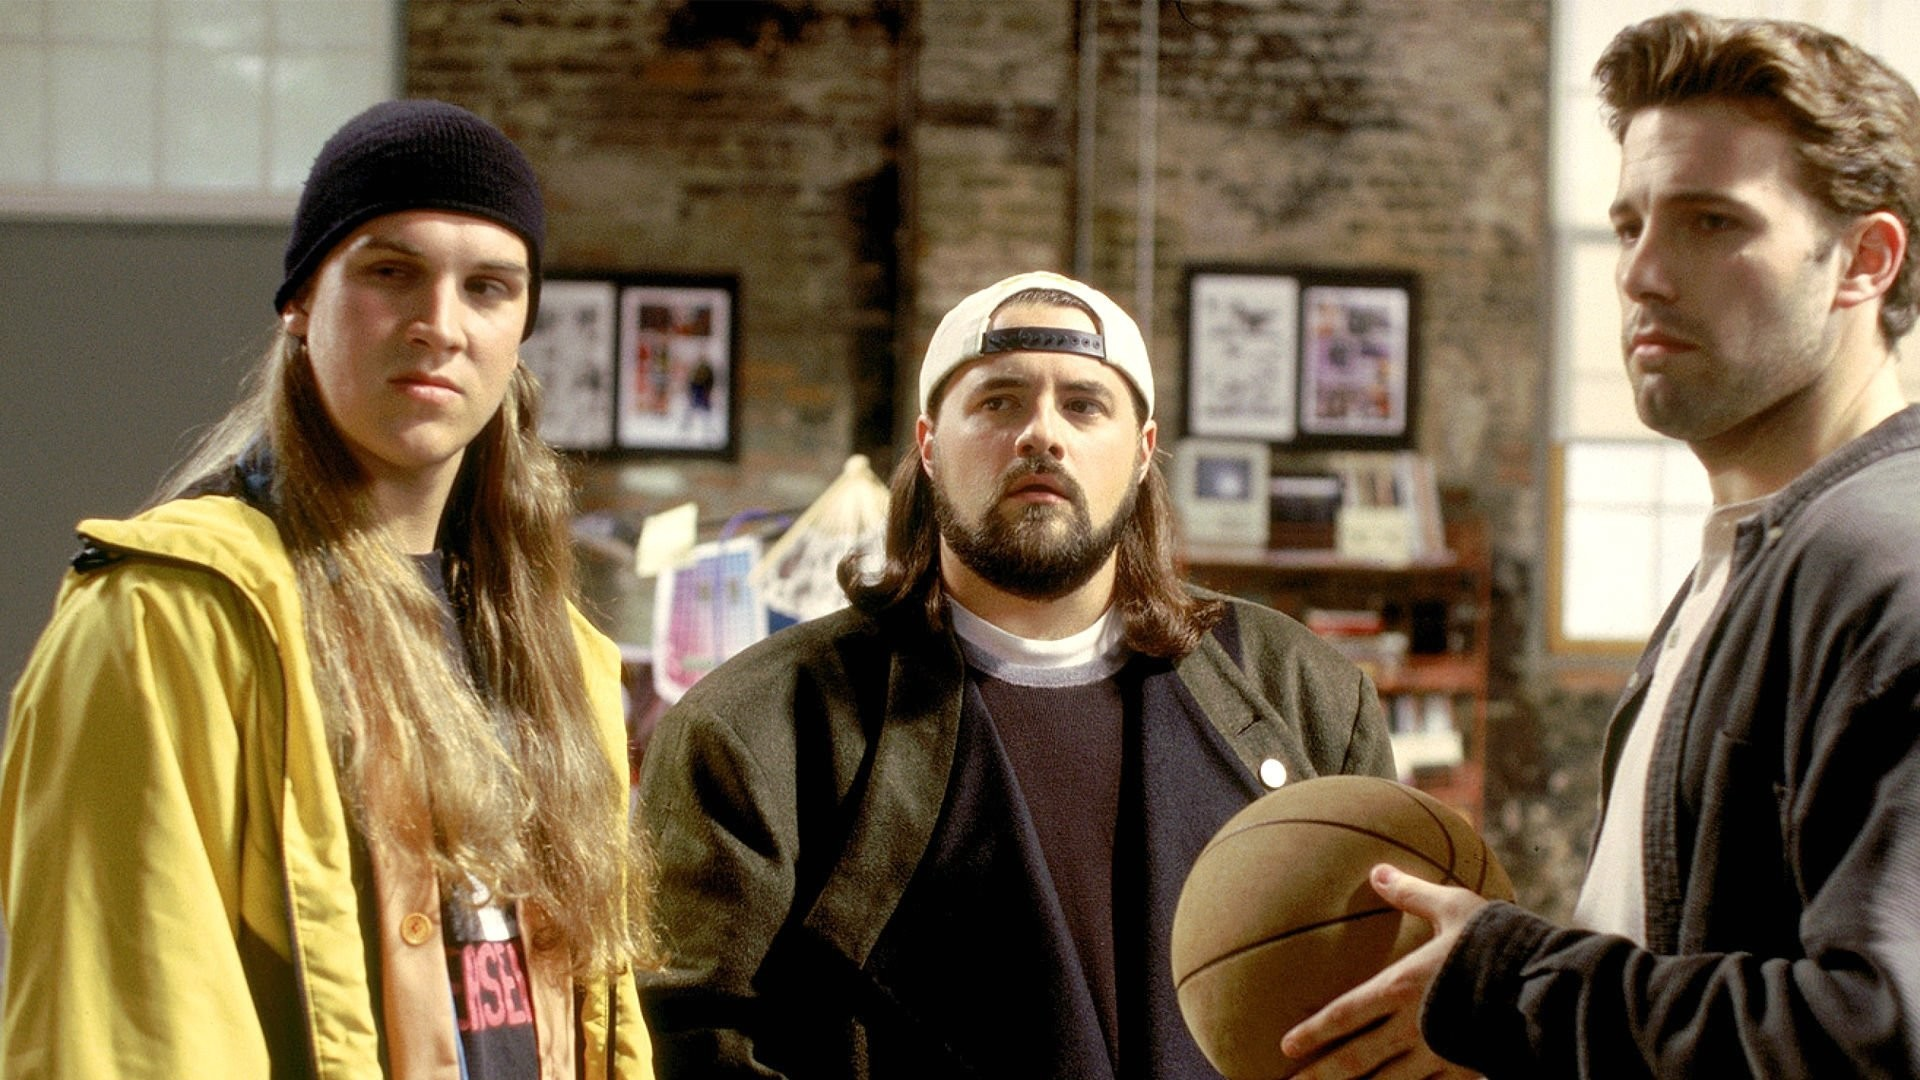 1920x1080 JAY SILENT BOB STRIKE BACK comedy humor funny wallpaper background